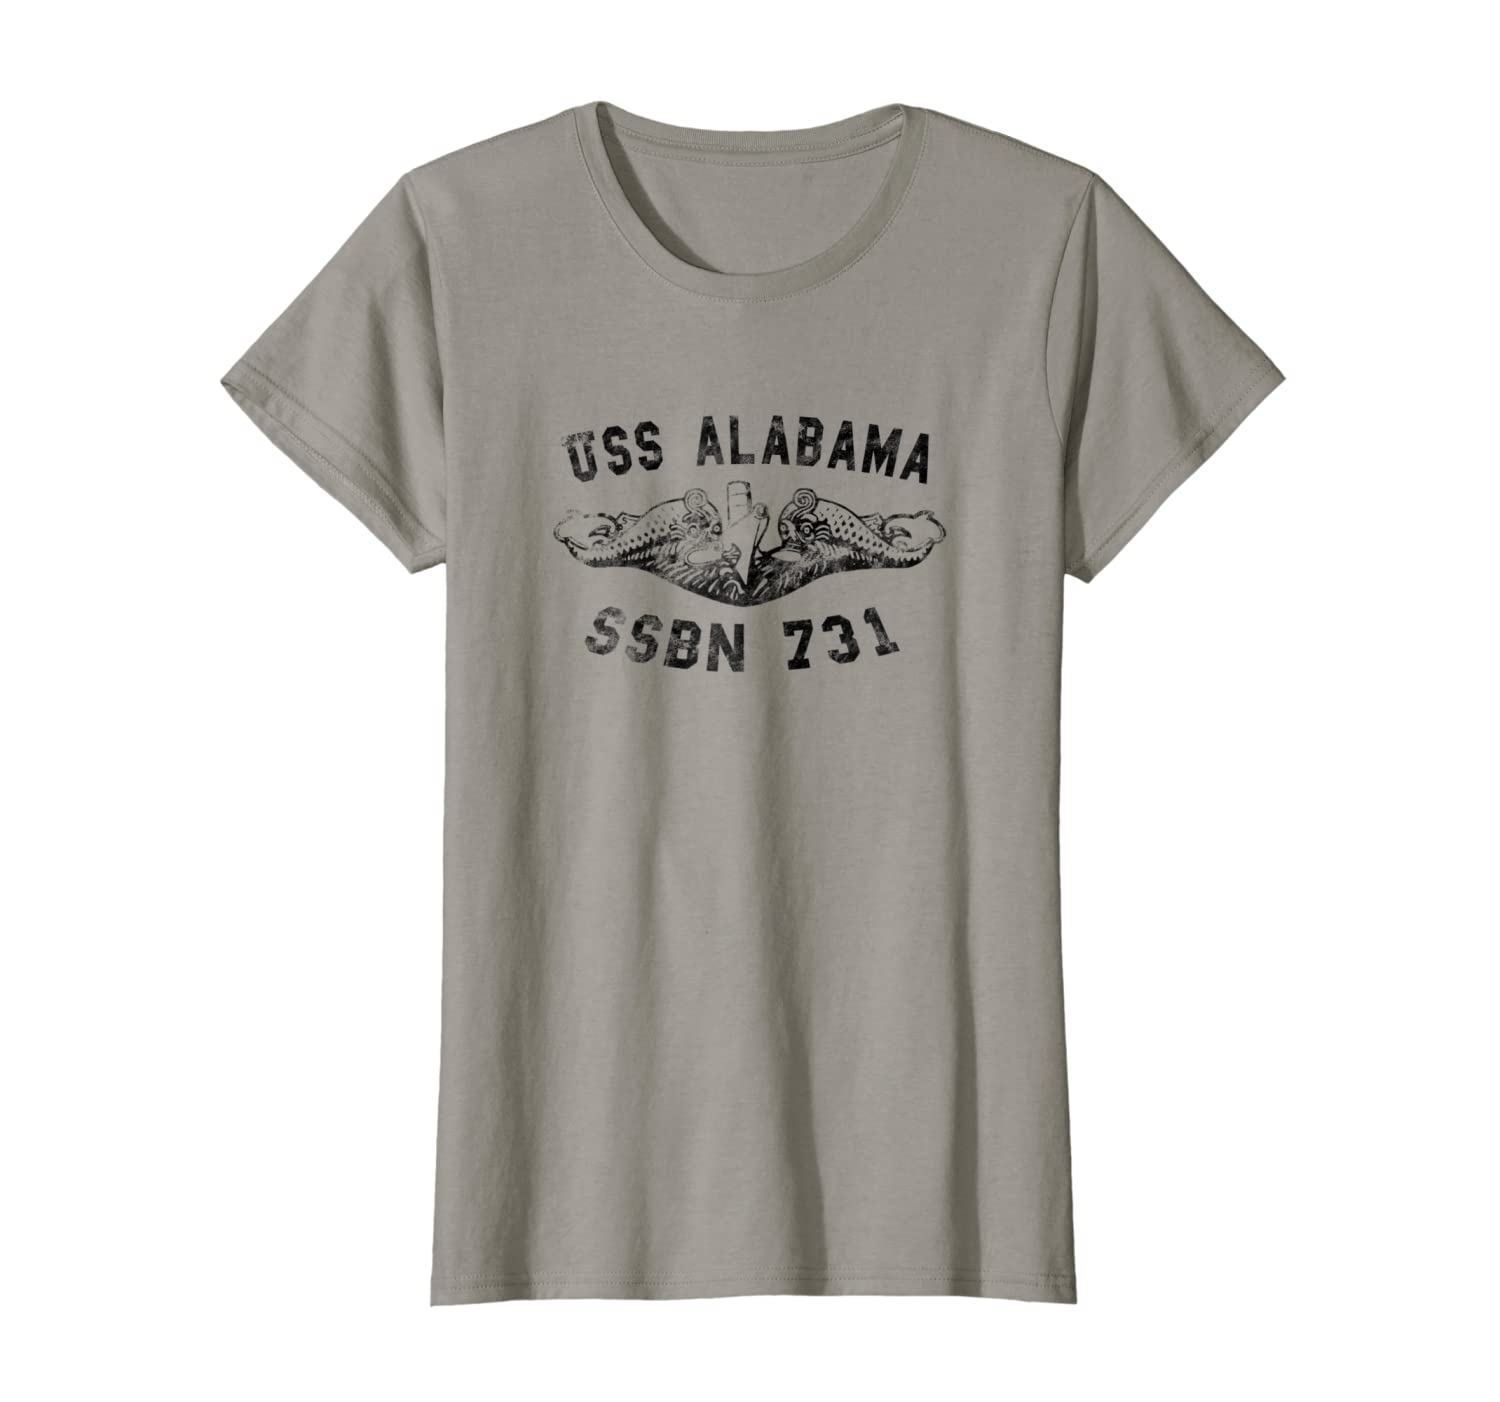 USS Alabama SSBN 731 Submarine Badge Vintage T-shirt